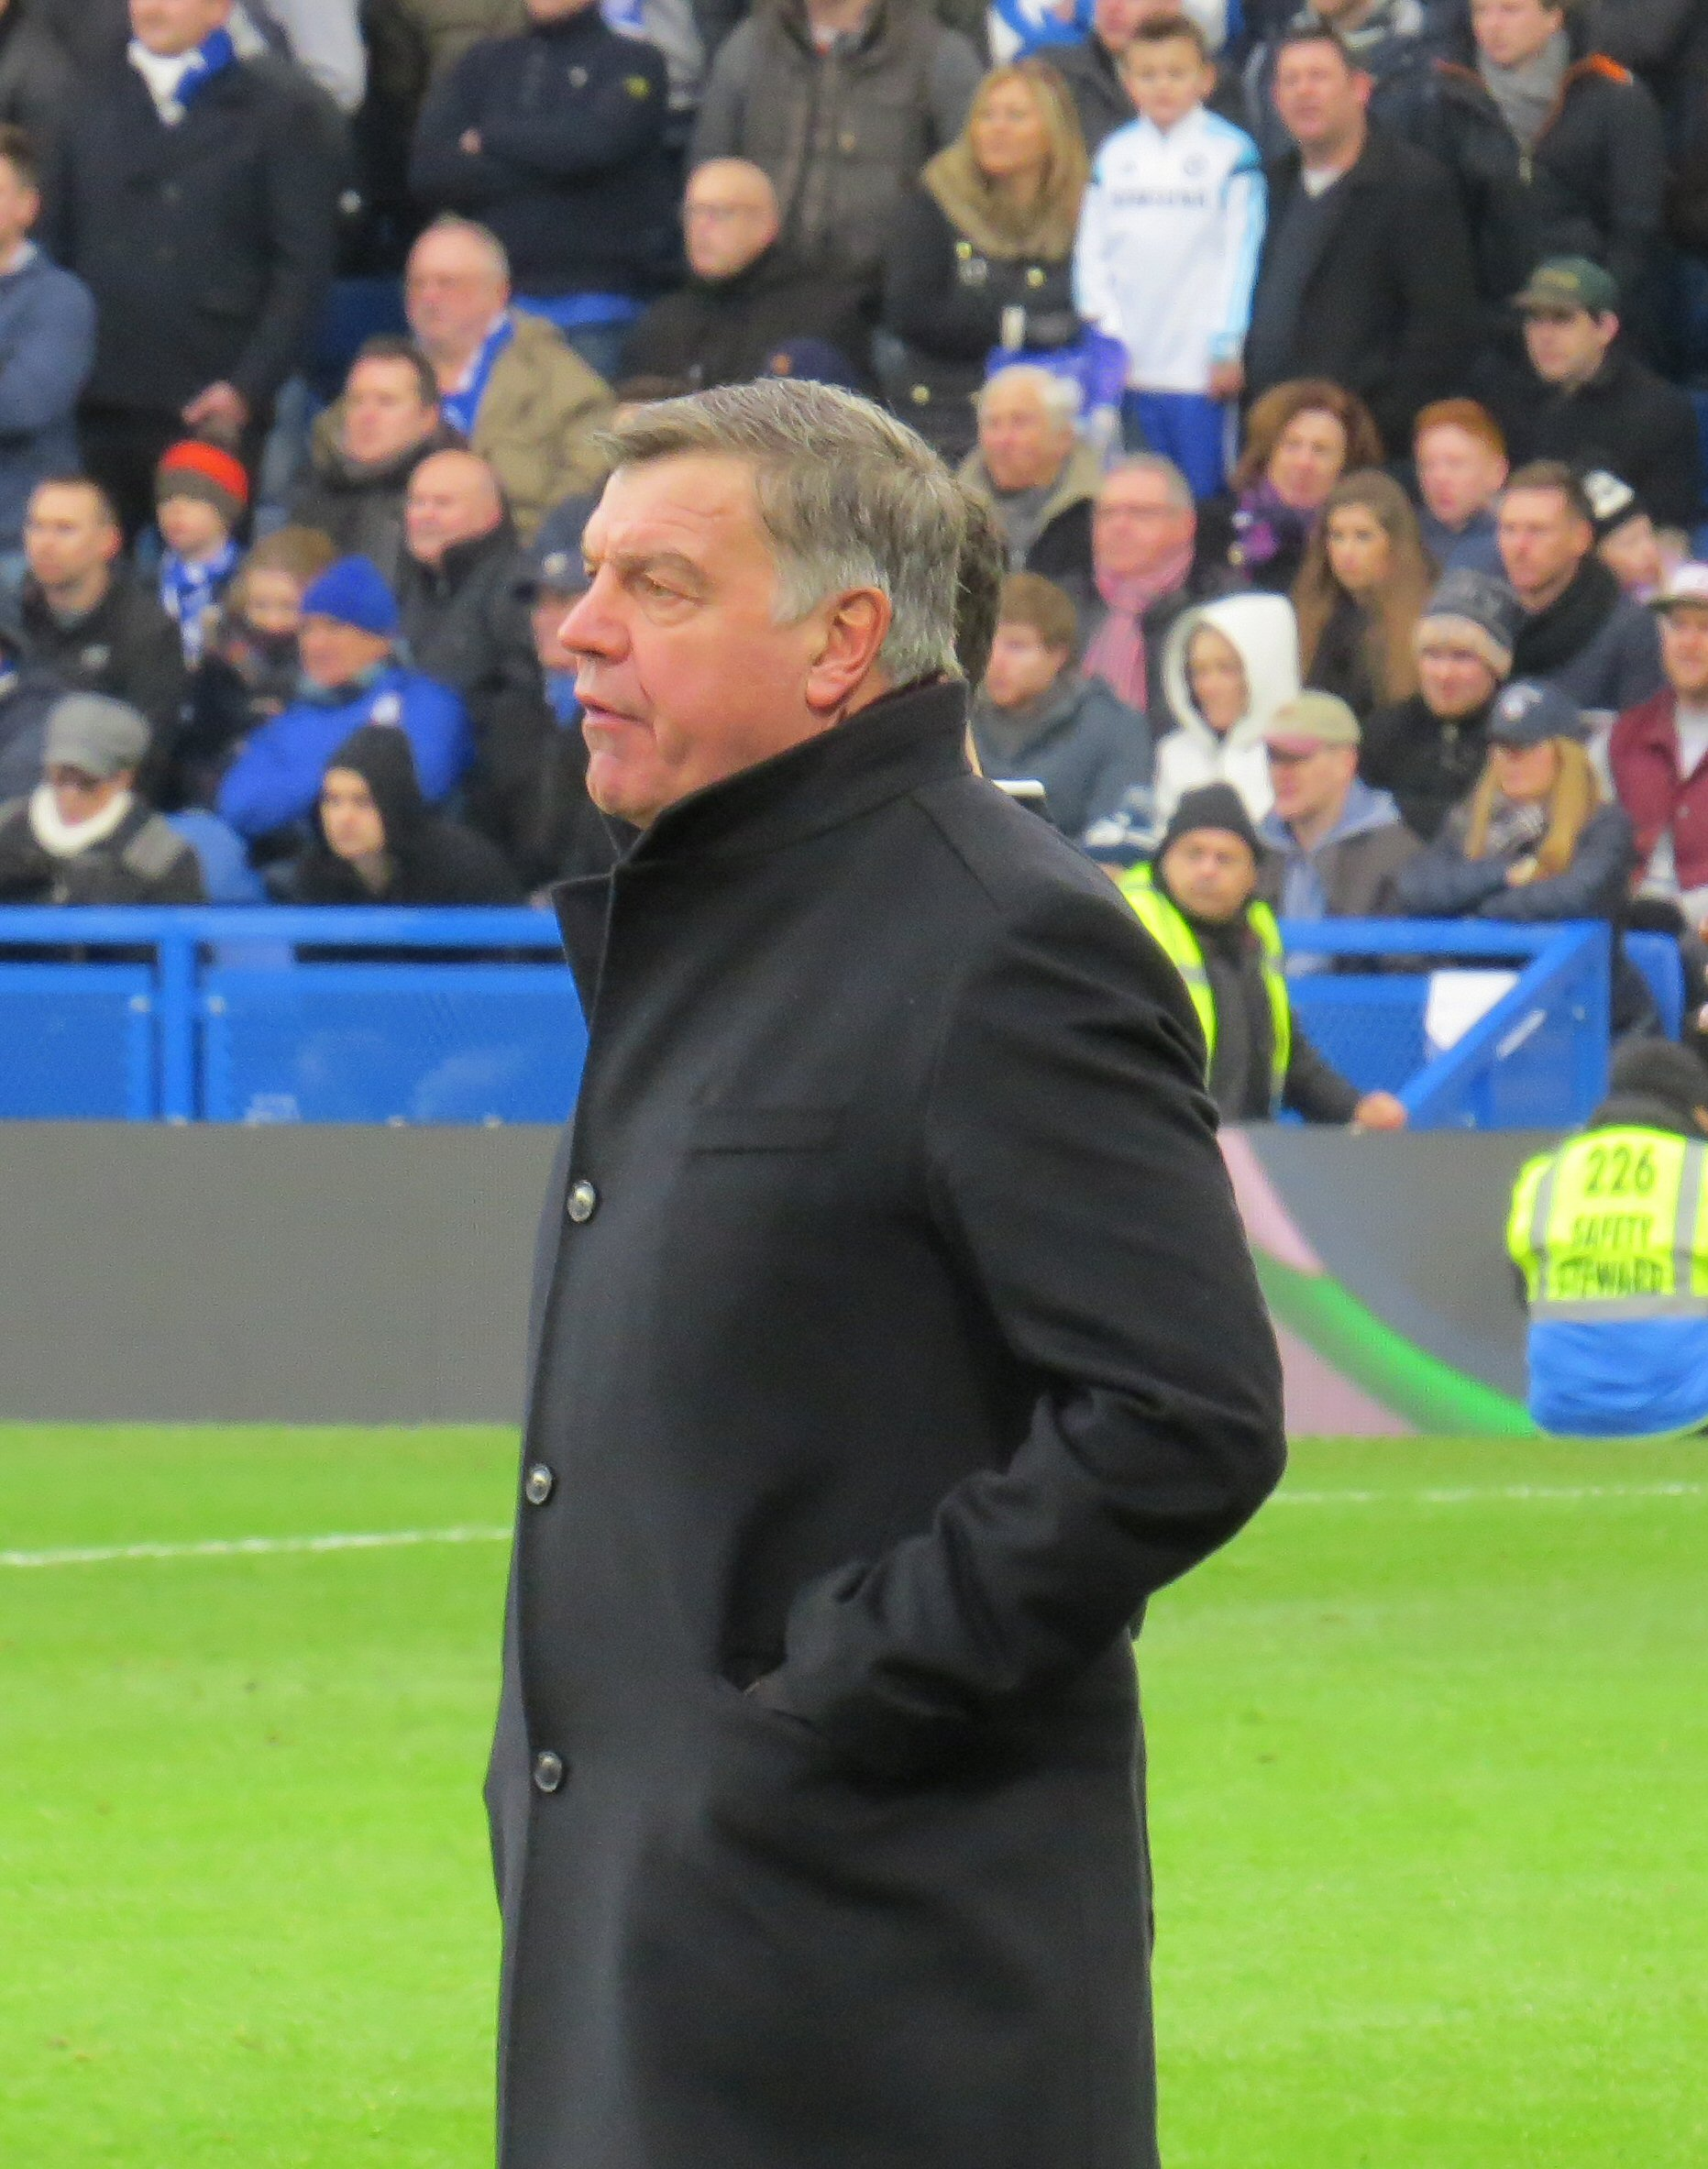 Into the mind of Sam Allardyce: Could the safe bet be the best bet?